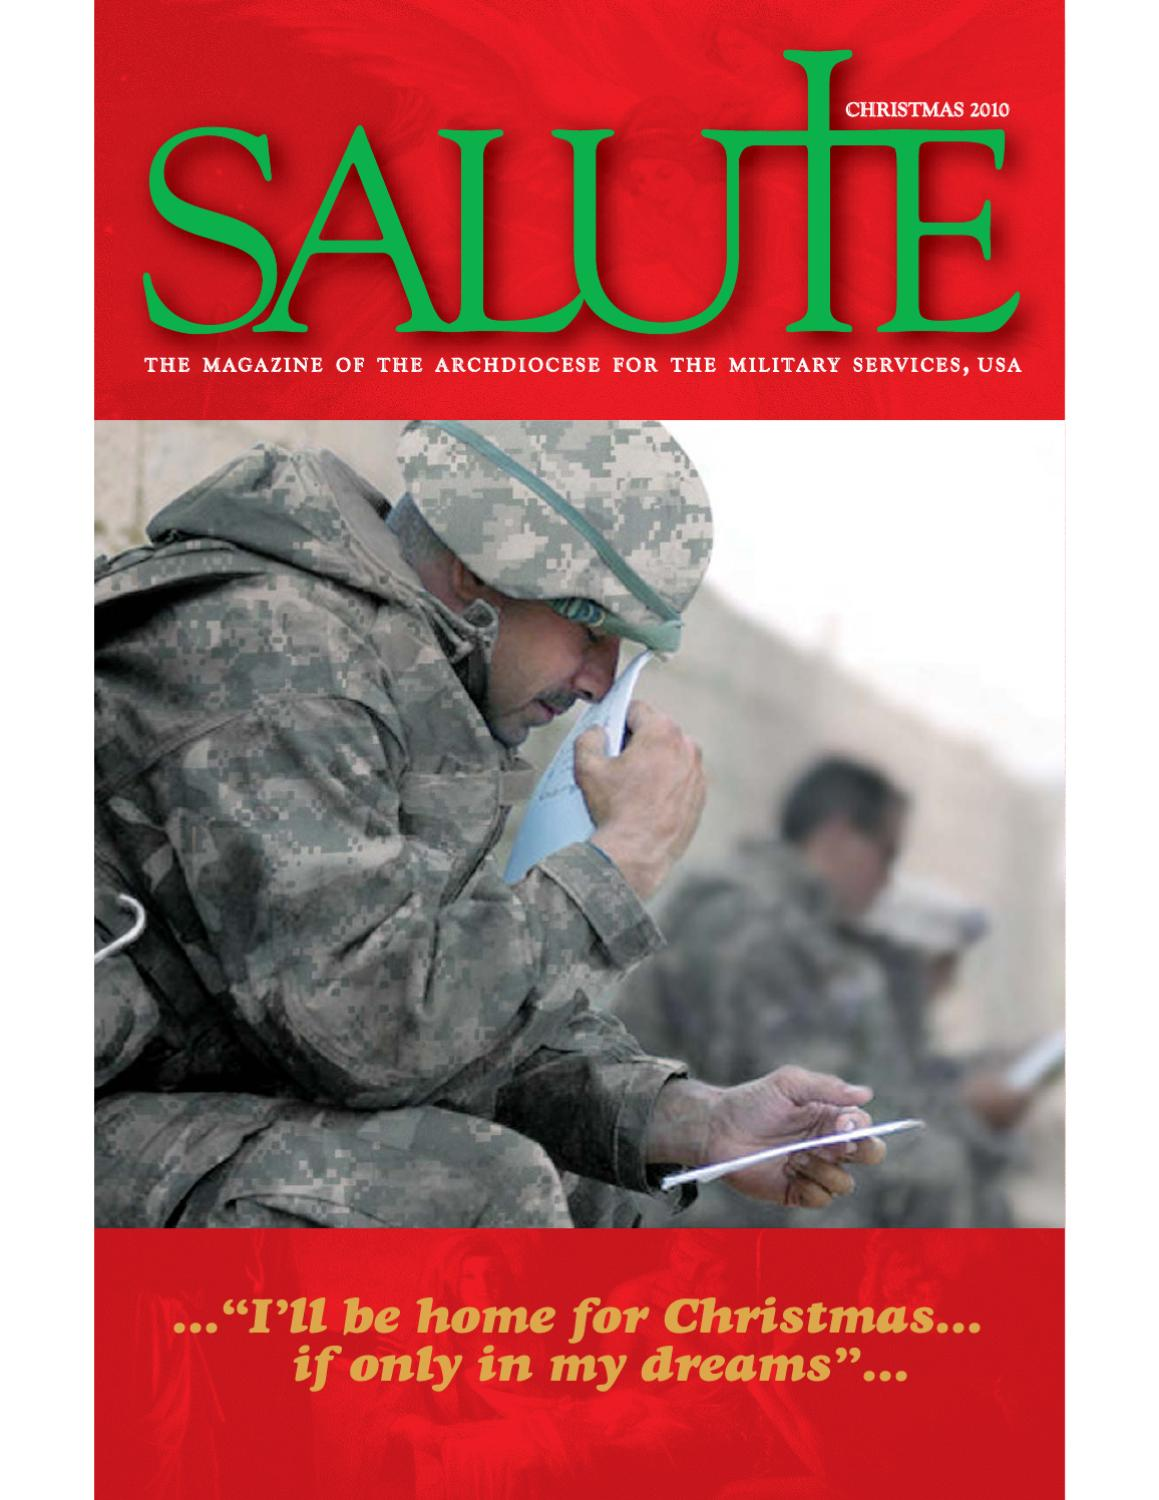 Salute Winter 2010 by Archdiocese for the Military Services, USA - issuu